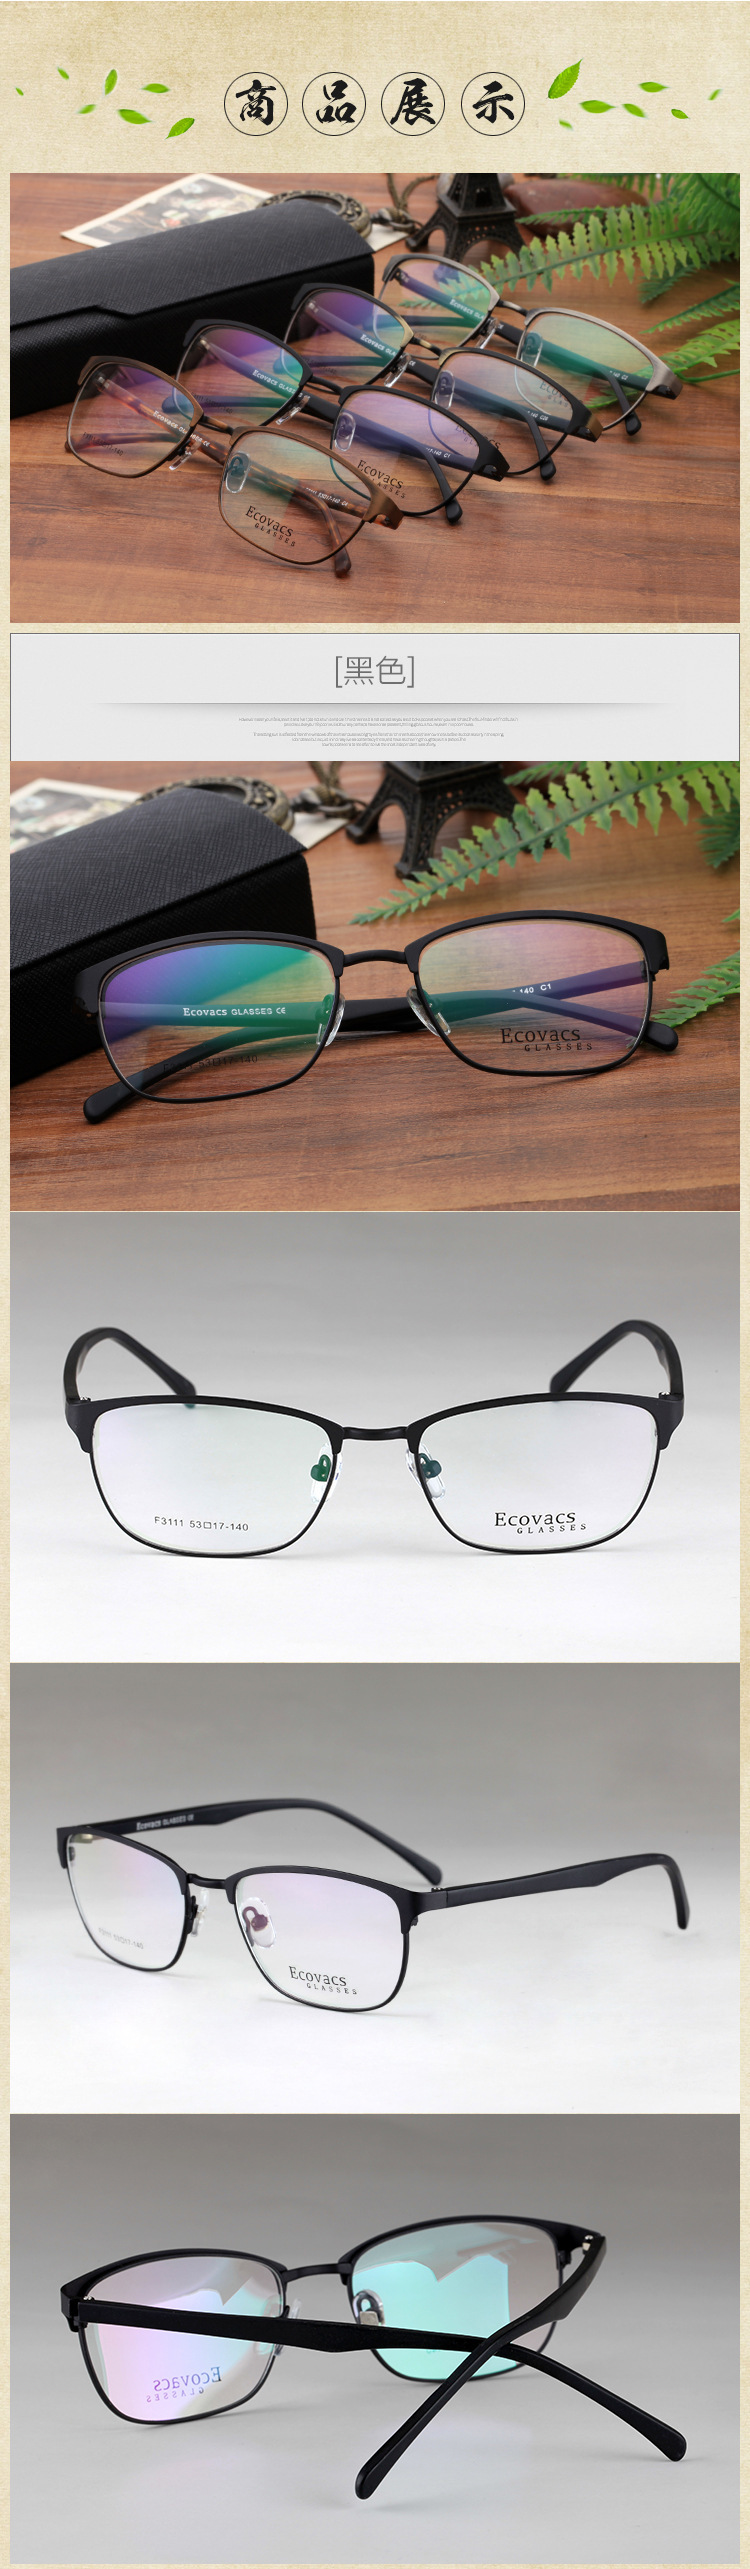 5b826c76fa Man Optics Myopic Eye Picture Restore Ancient Ways Circle Glasses Woman  Fund Will Frame Decoration Metal Texture Glasses 3111-in Eyewear Frames  from Women s ...